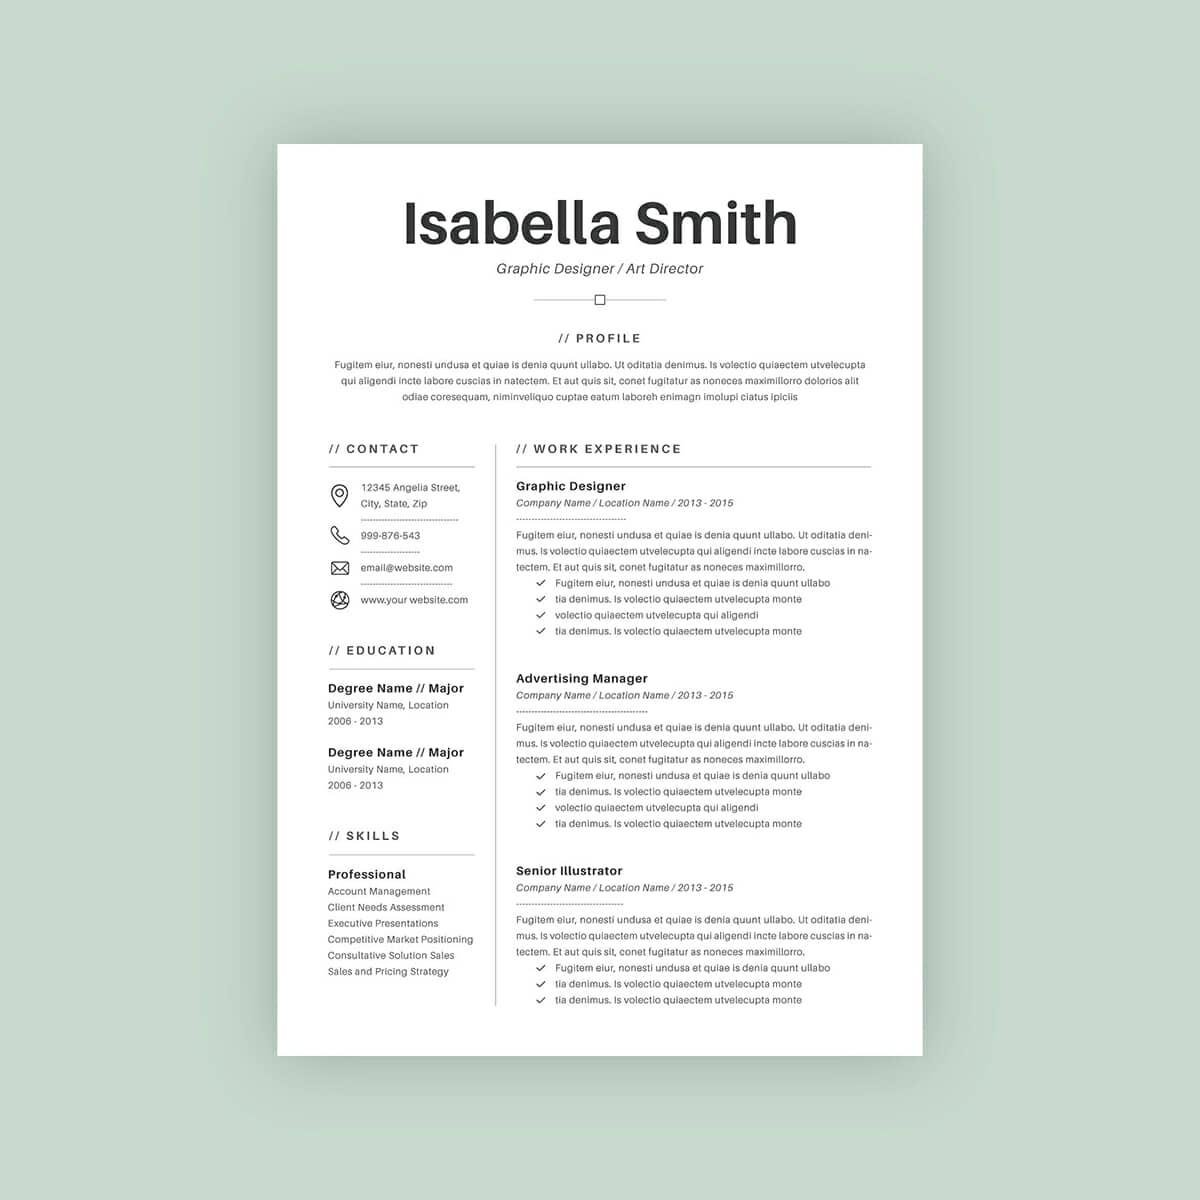 Basic Template For Resume With A Lot Of Experience. U201c Inside Basic Resume Template